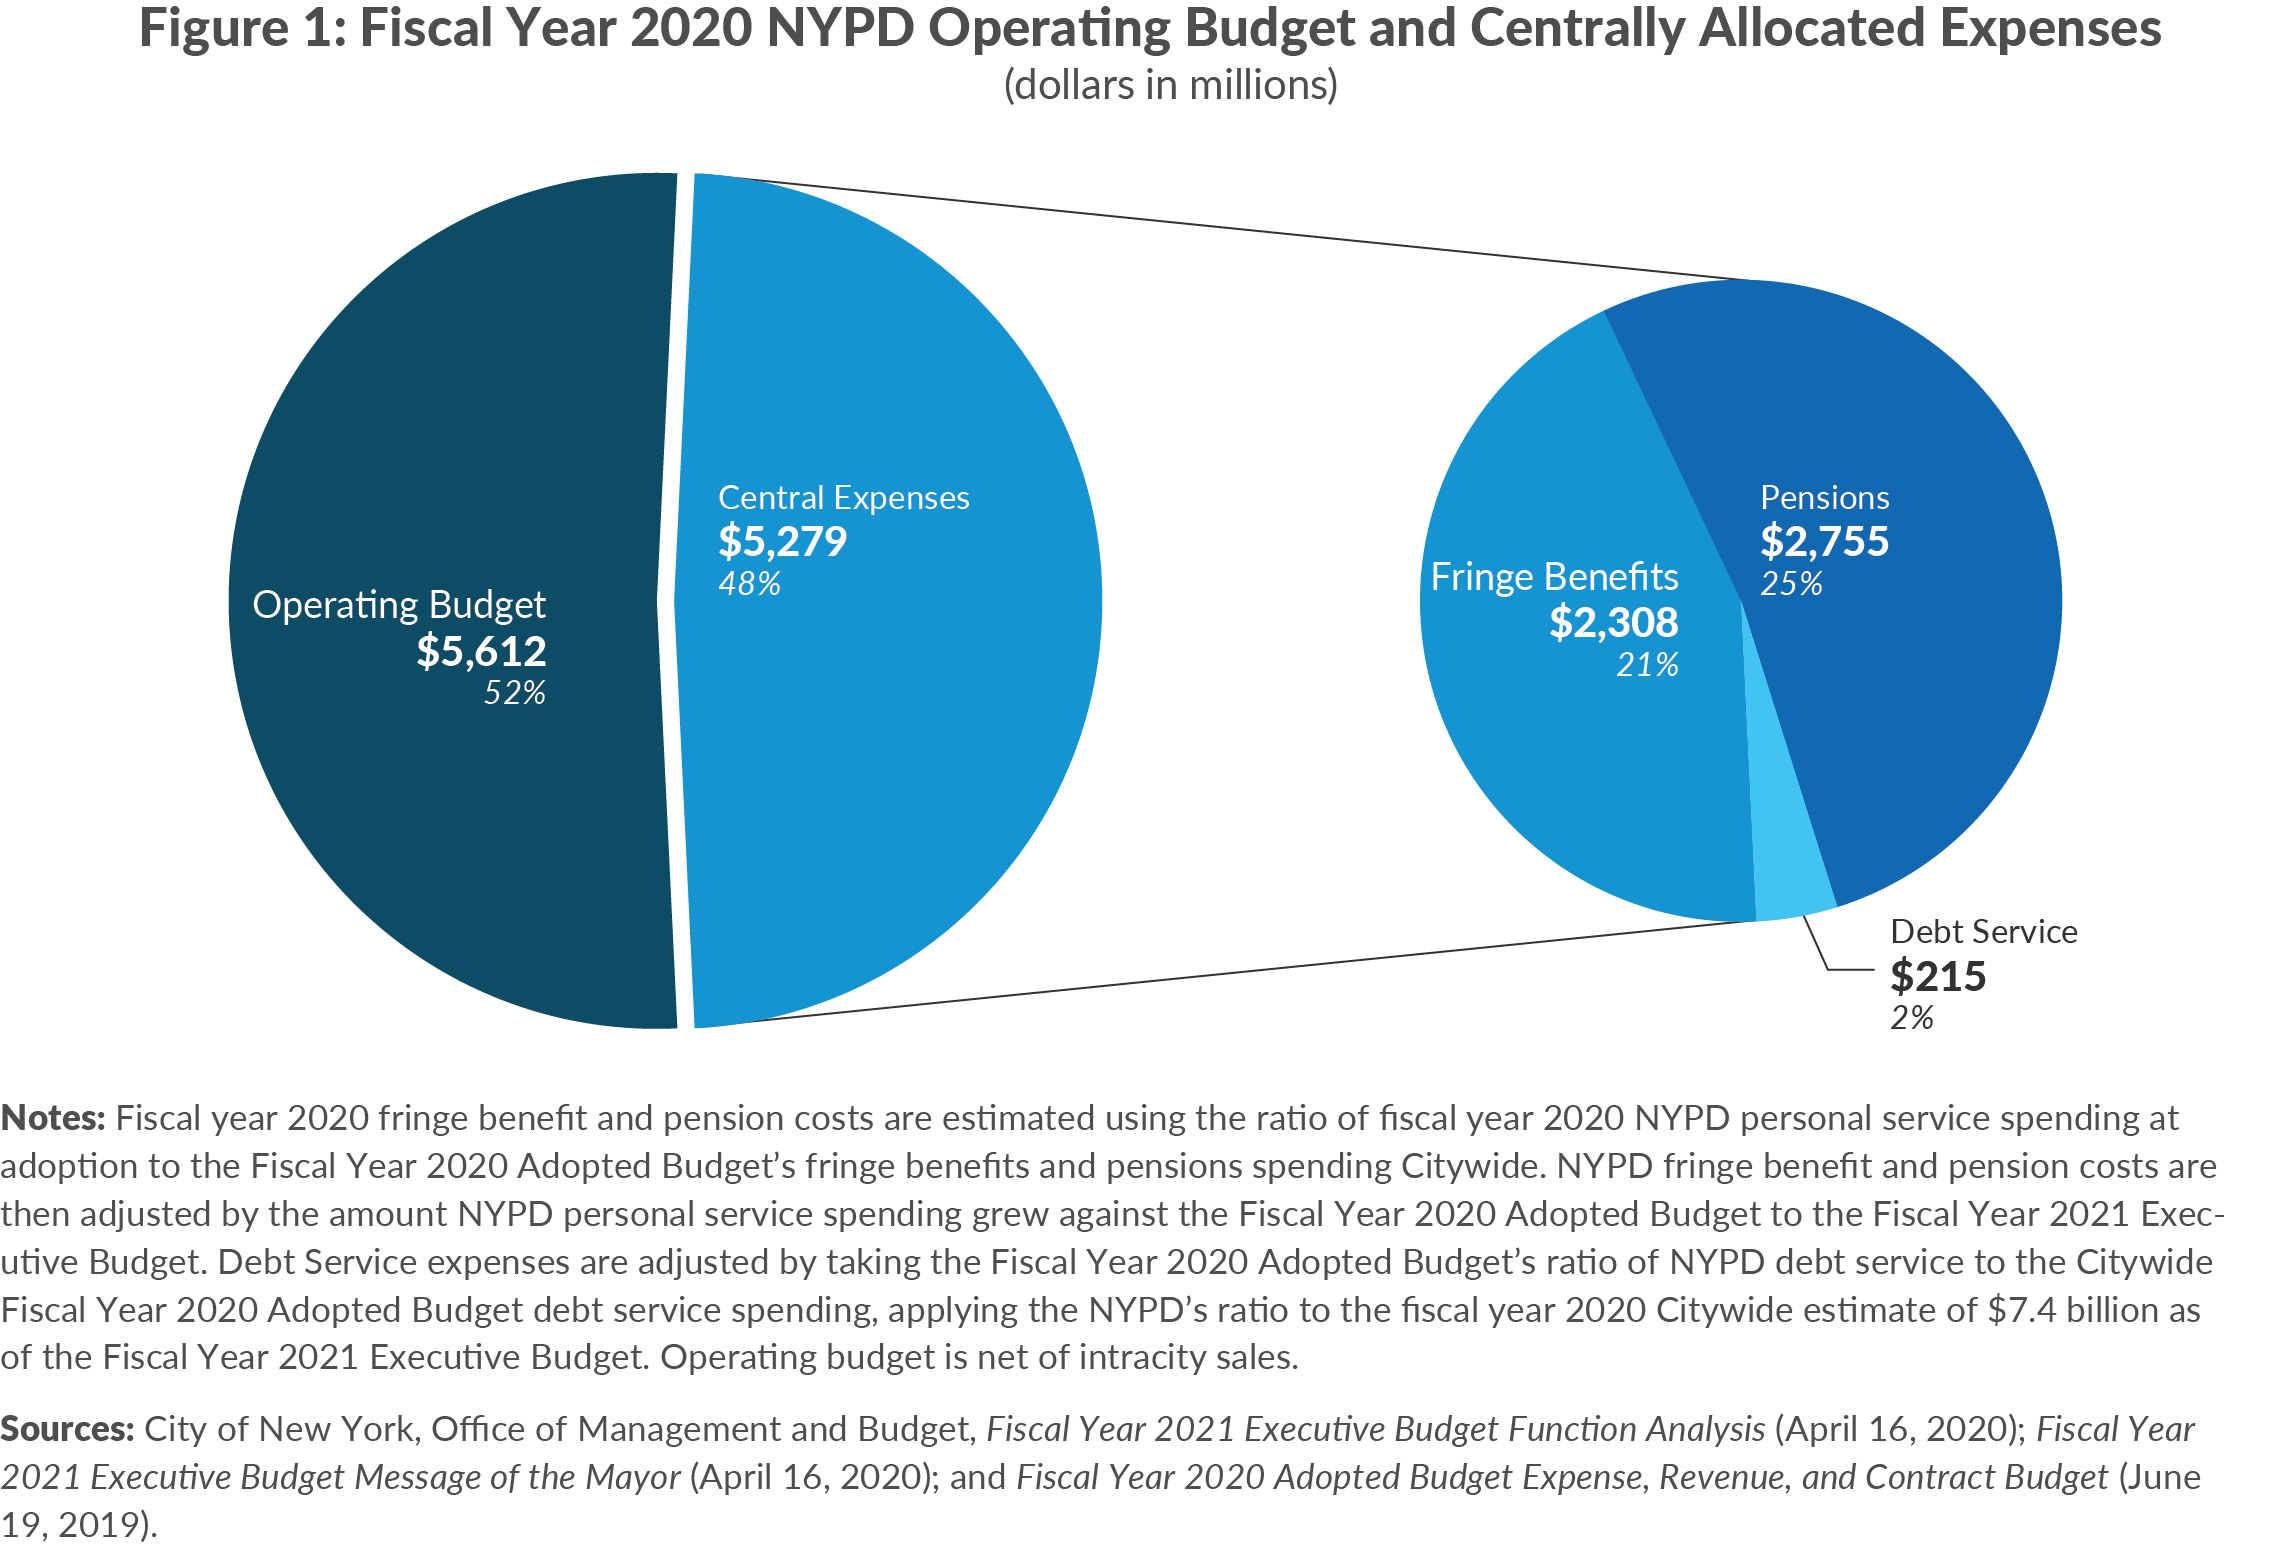 Figure 1. Fiscal Year 2020 NYPD Operating Budget and Centrally Allocated Expenses, dollars in millions